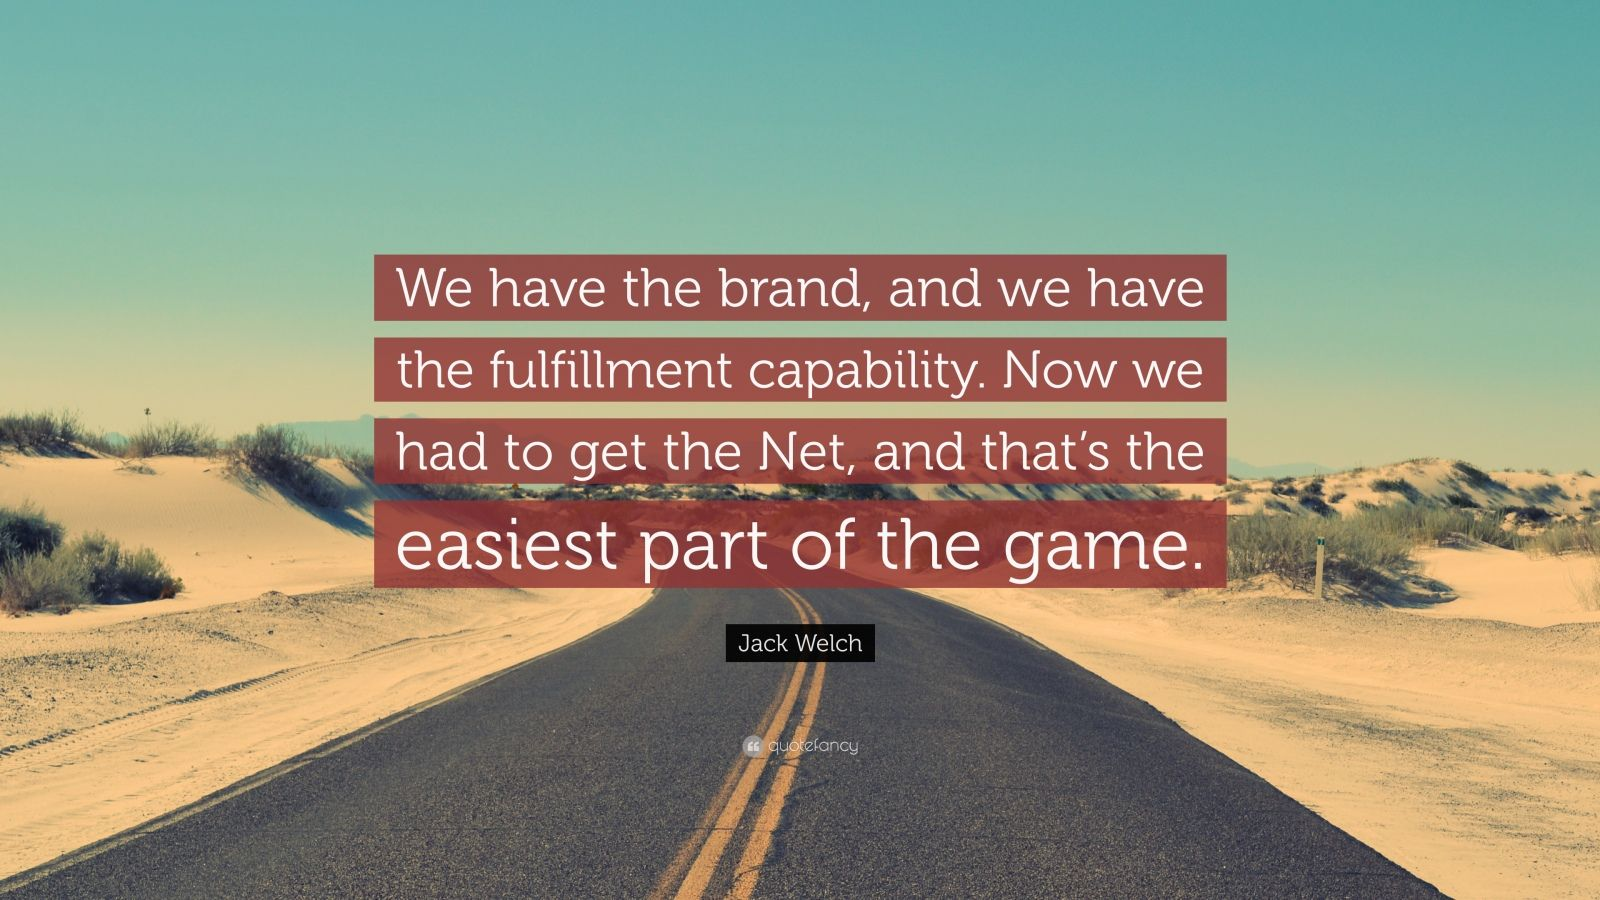 """Jack Welch Quote: """"We have the brand, and we have the fulfillment capability. Now we had to get the Net, and that's the easiest part of the game."""""""